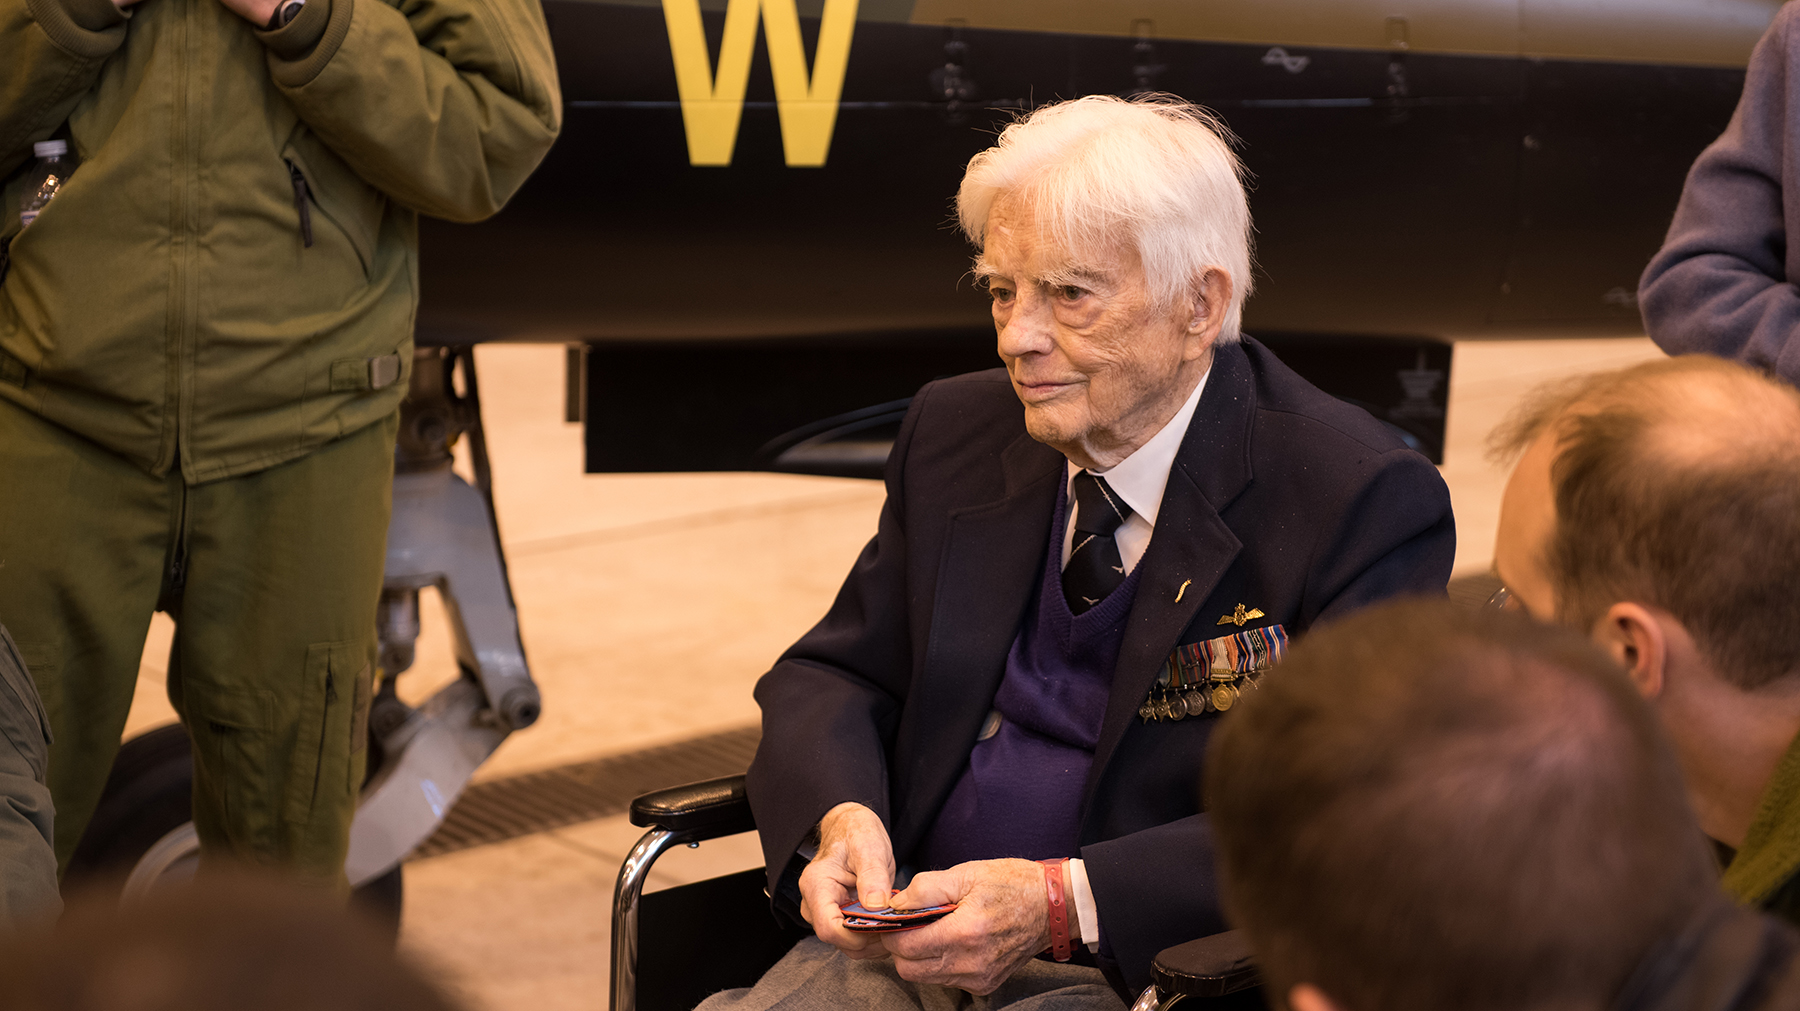 Royal Canadian Air Force Squadron Leader (retired) George Sweanor, 98, one of the founding members of No. 419 squadron, talks with members of 419 Tactical Fighter (Training) Squadron at Colorado Springs, Colorado, on February 23, 2018, following the unit's training mission in El Centro, California. PHOTO: NORAD/USNORTHCOM Public Affairs